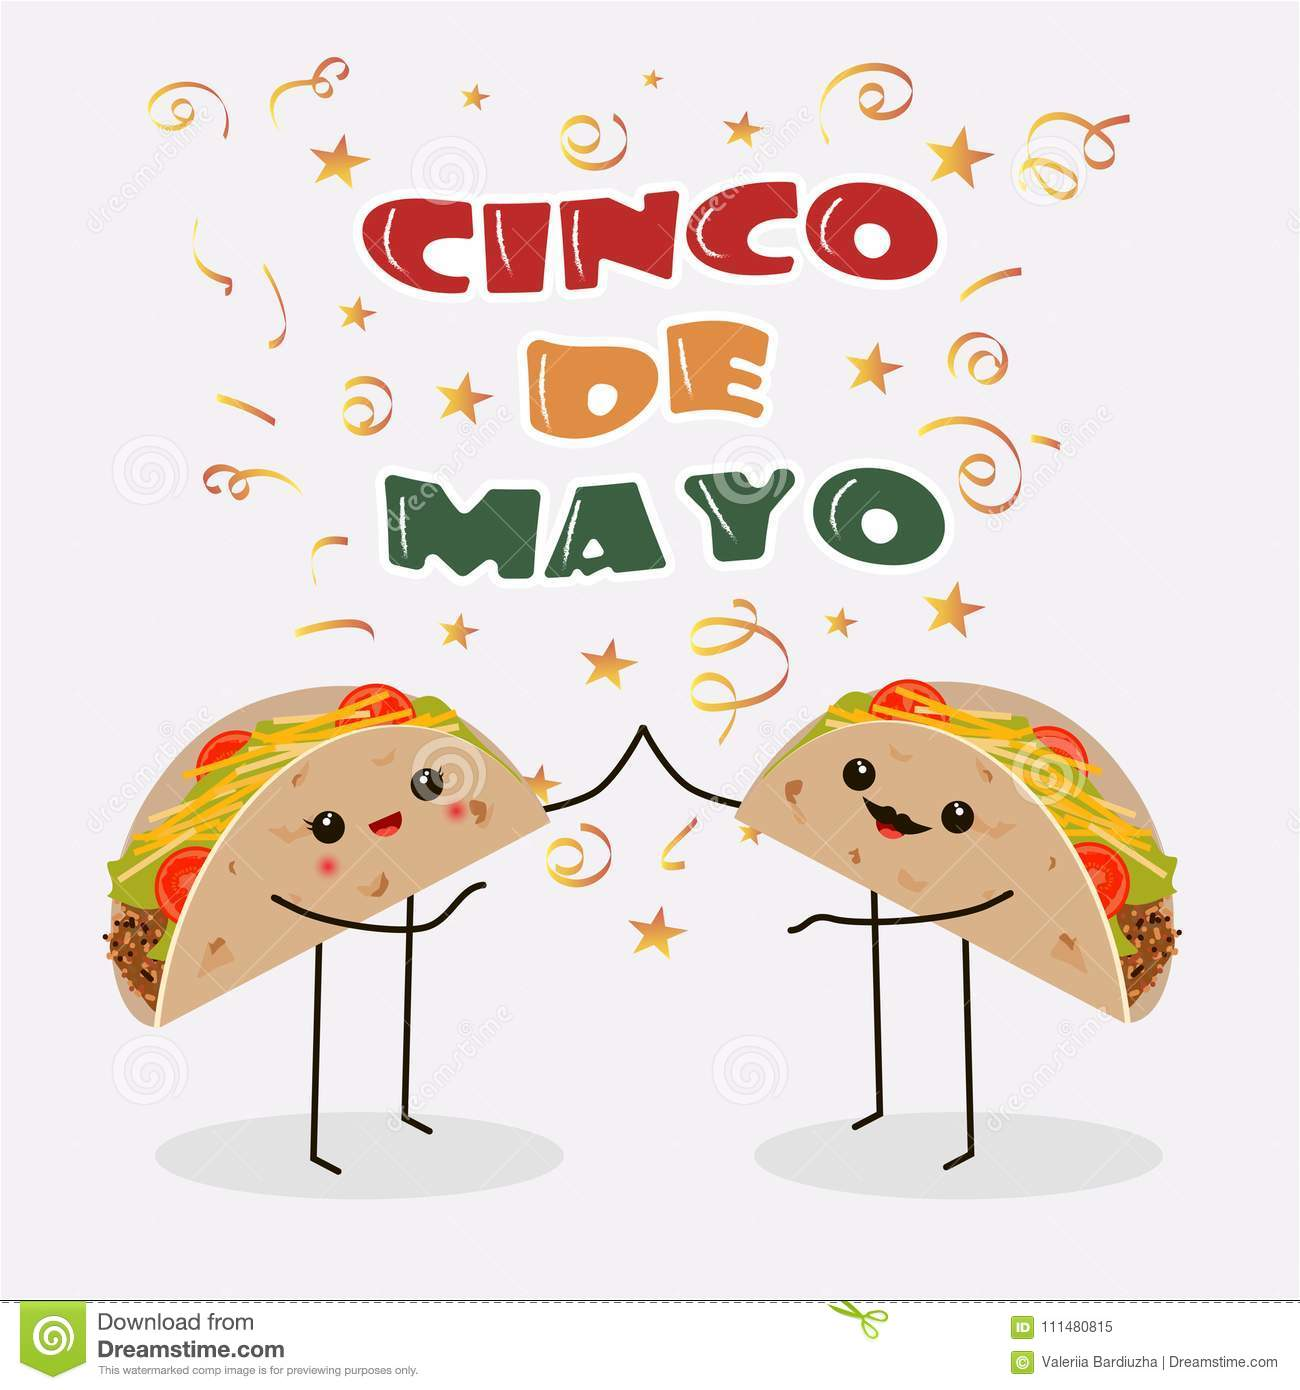 Cinco De Mayo Template from thumbs.dreamstime.com